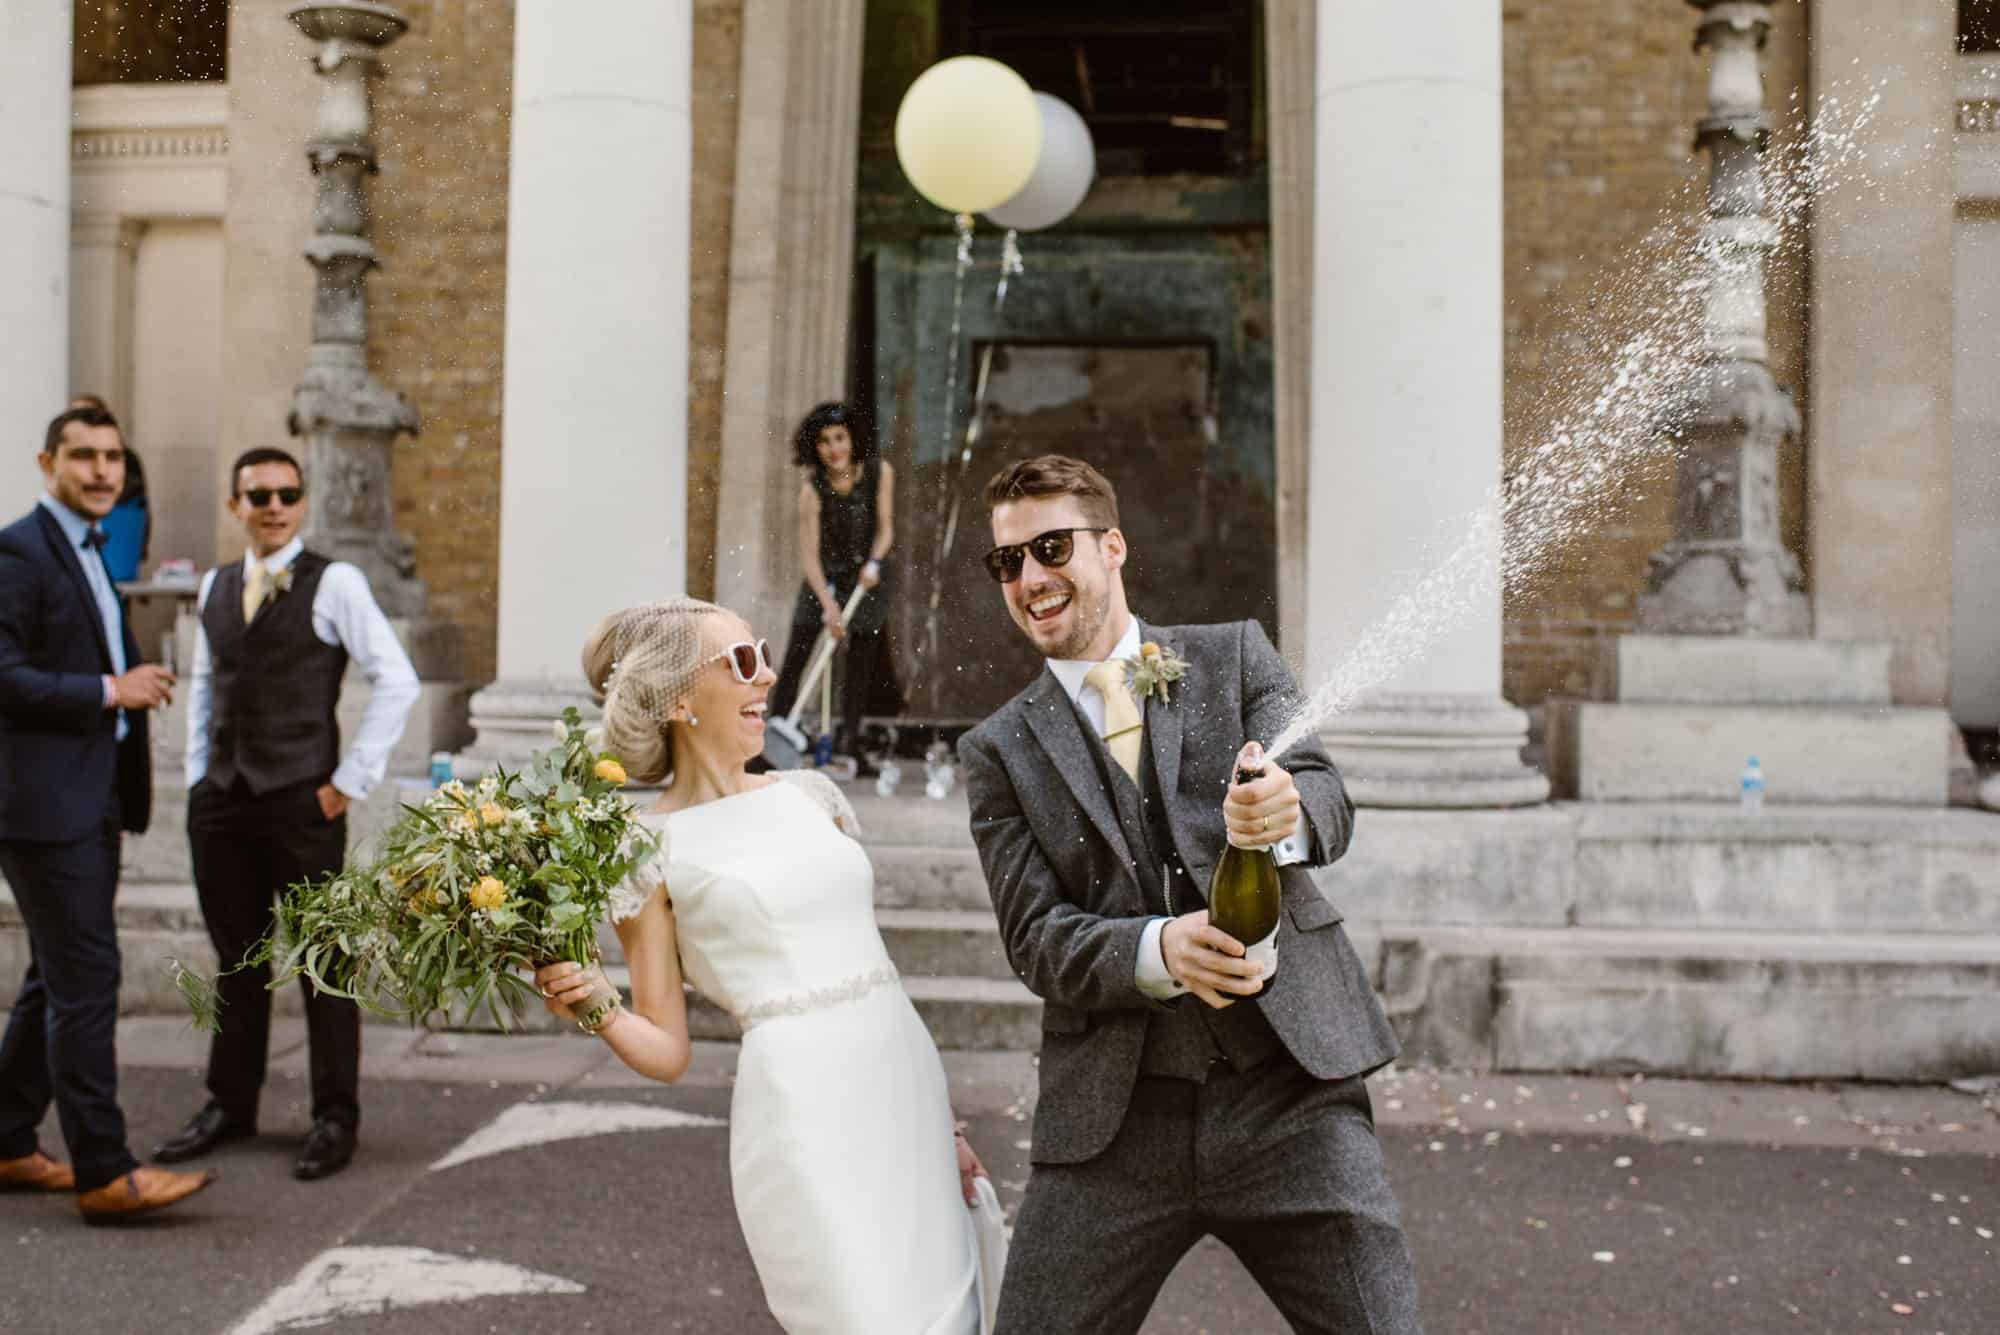 Lucy & Tom celebrating after their wedding ceremony.